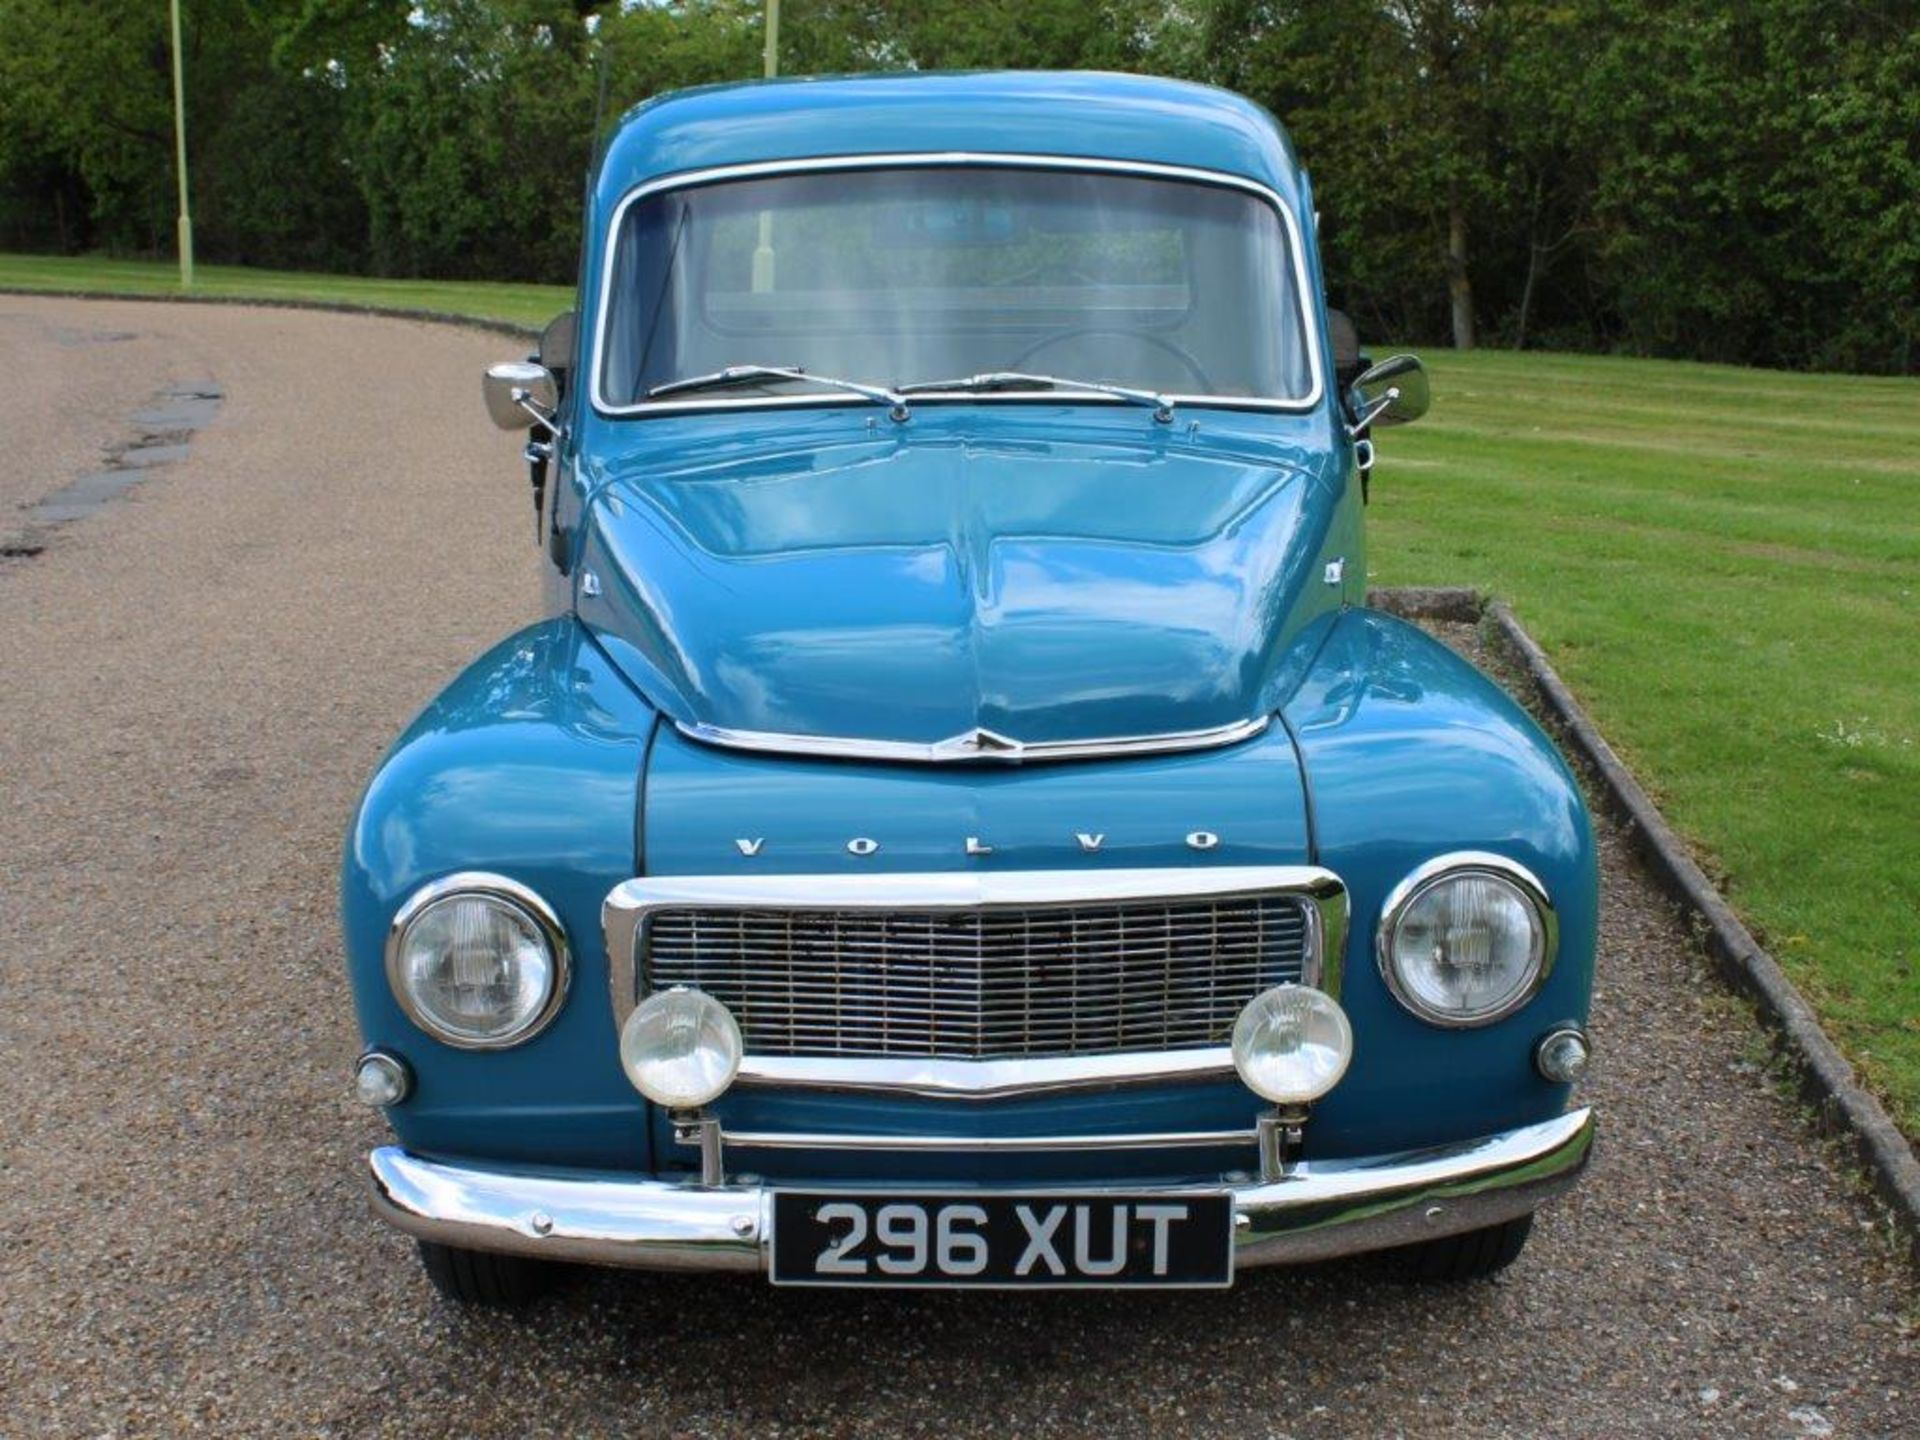 1961 Volvo P 21114 A Pick-Up LHD - Image 2 of 25